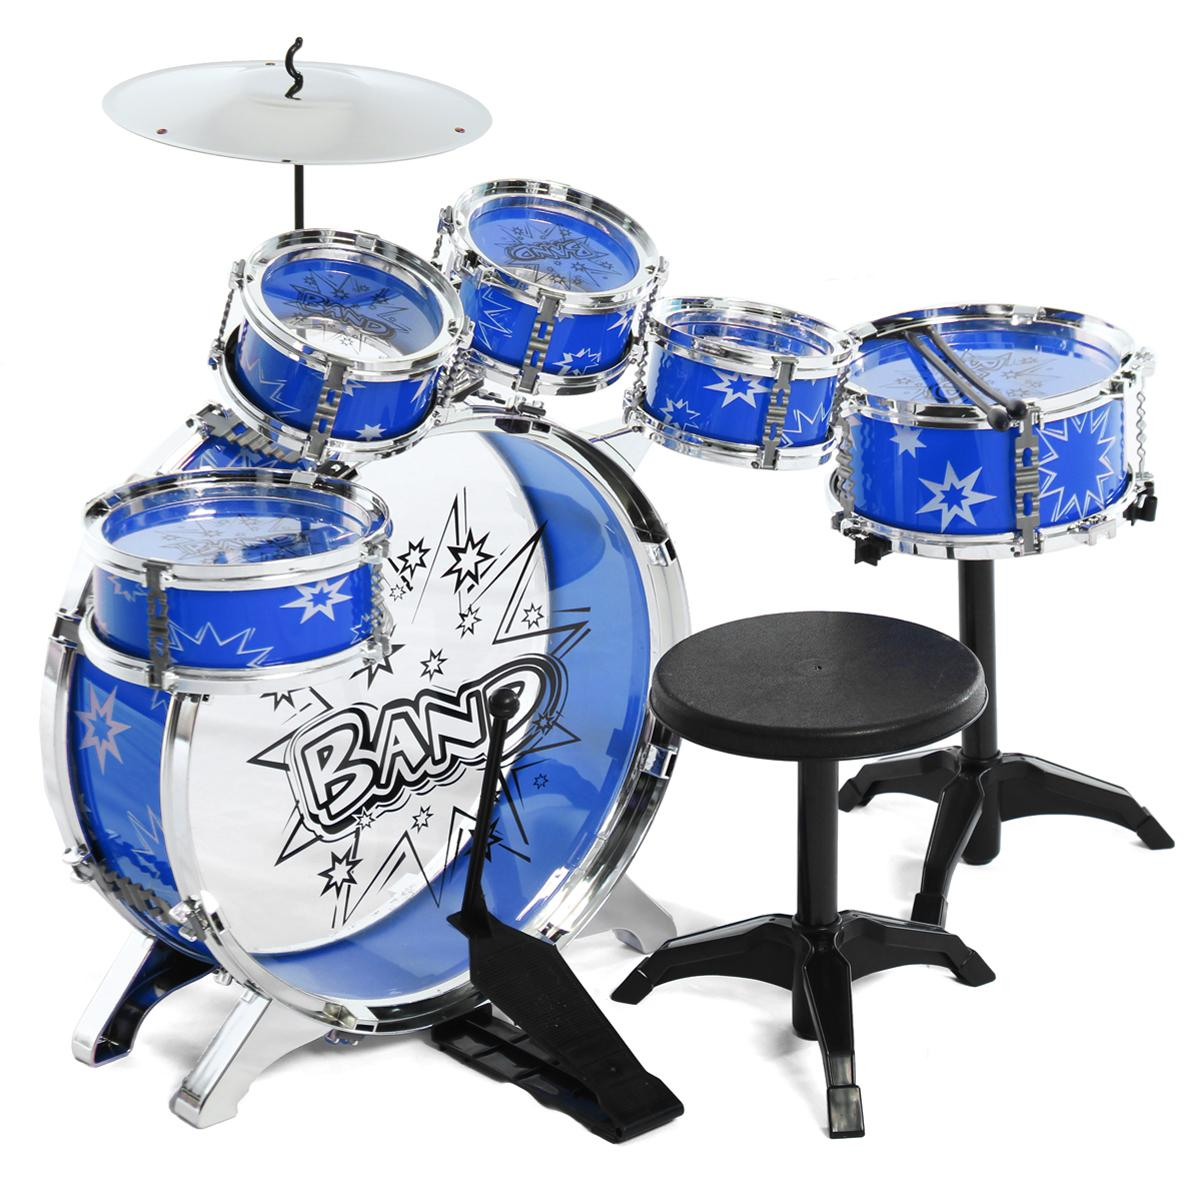 Where Can I Buy Kids Children Junior Drum Set Drums Kit Percussion Musical Instrument With Cymbal Drumsticks Adjustable Stool Intl